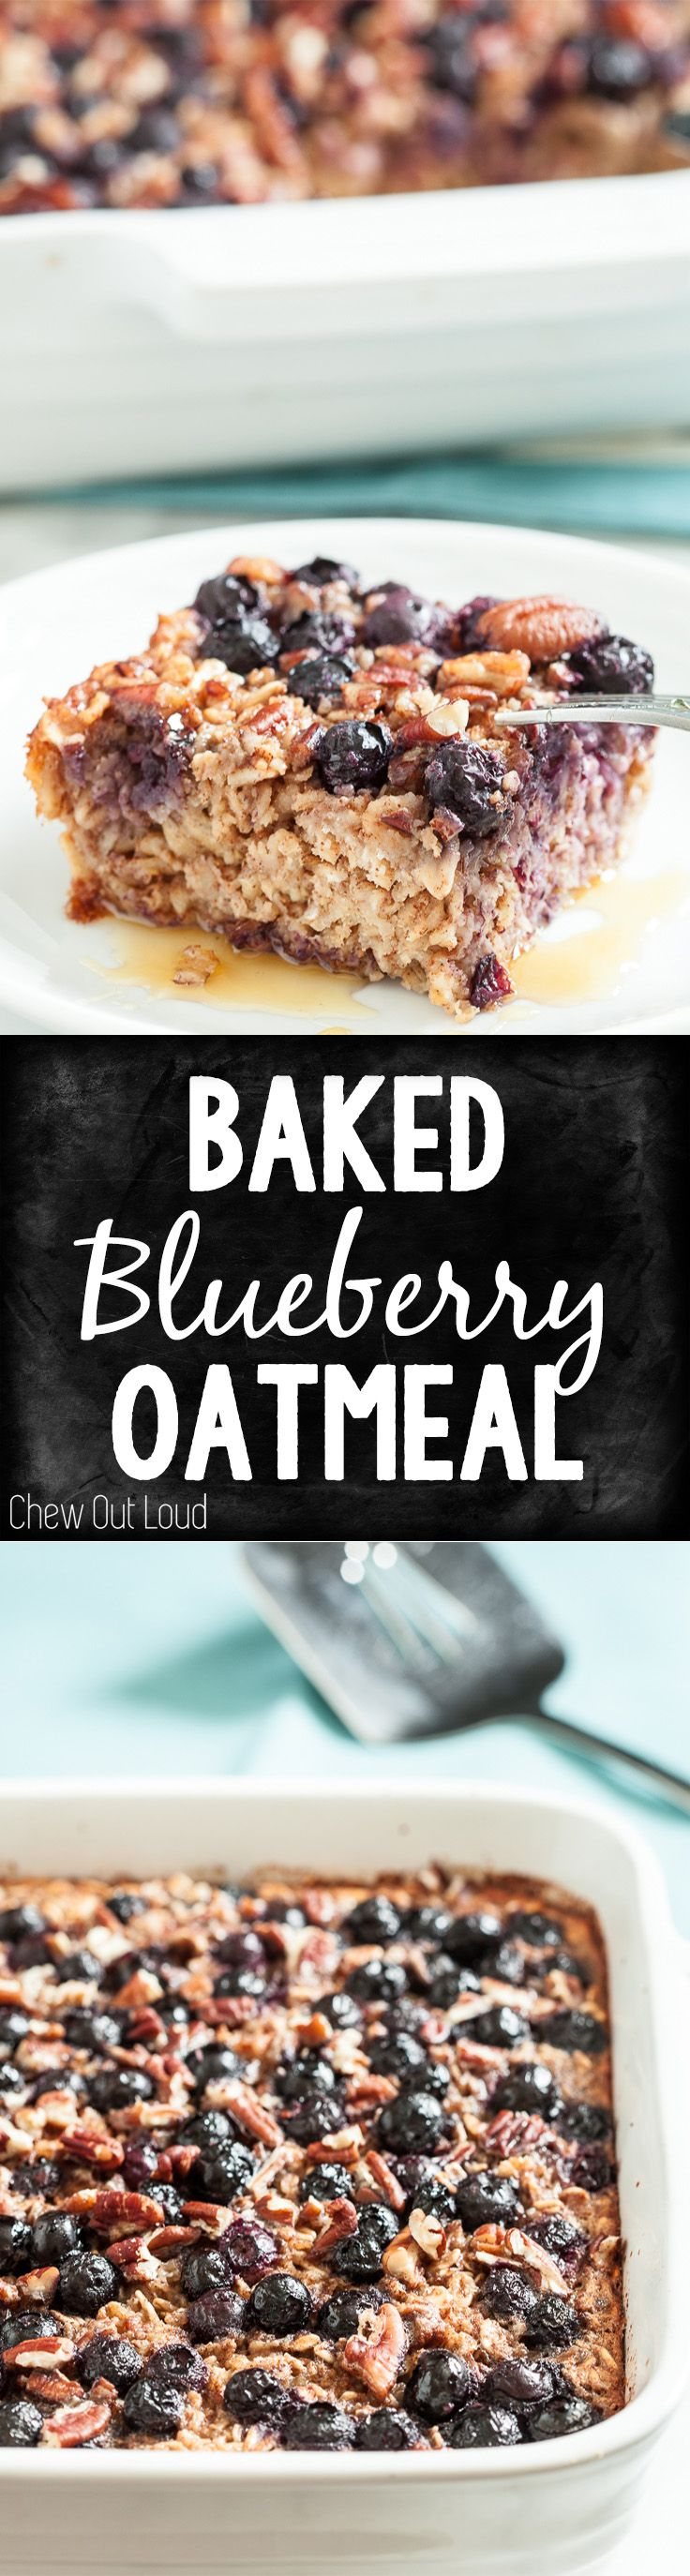 Clean, Healthy, and Too Delicious! Baked Blueberry Oatmeal is easy and can be made the night before. #breakfast #brunch #glutenfree